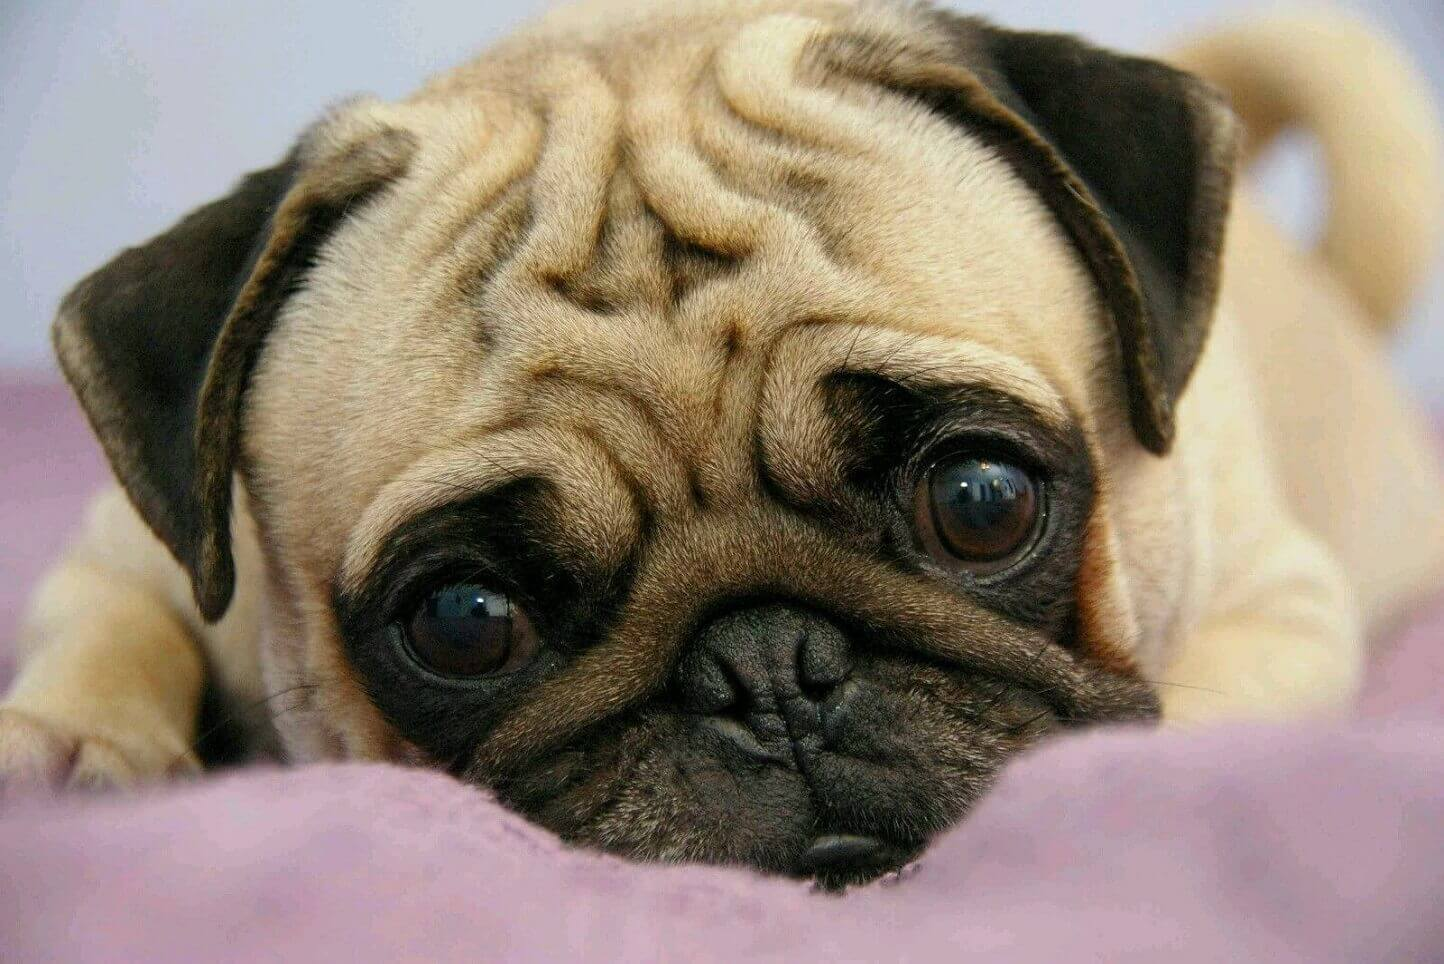 Pug Dog images, Pug Dog information, Pug Image in India